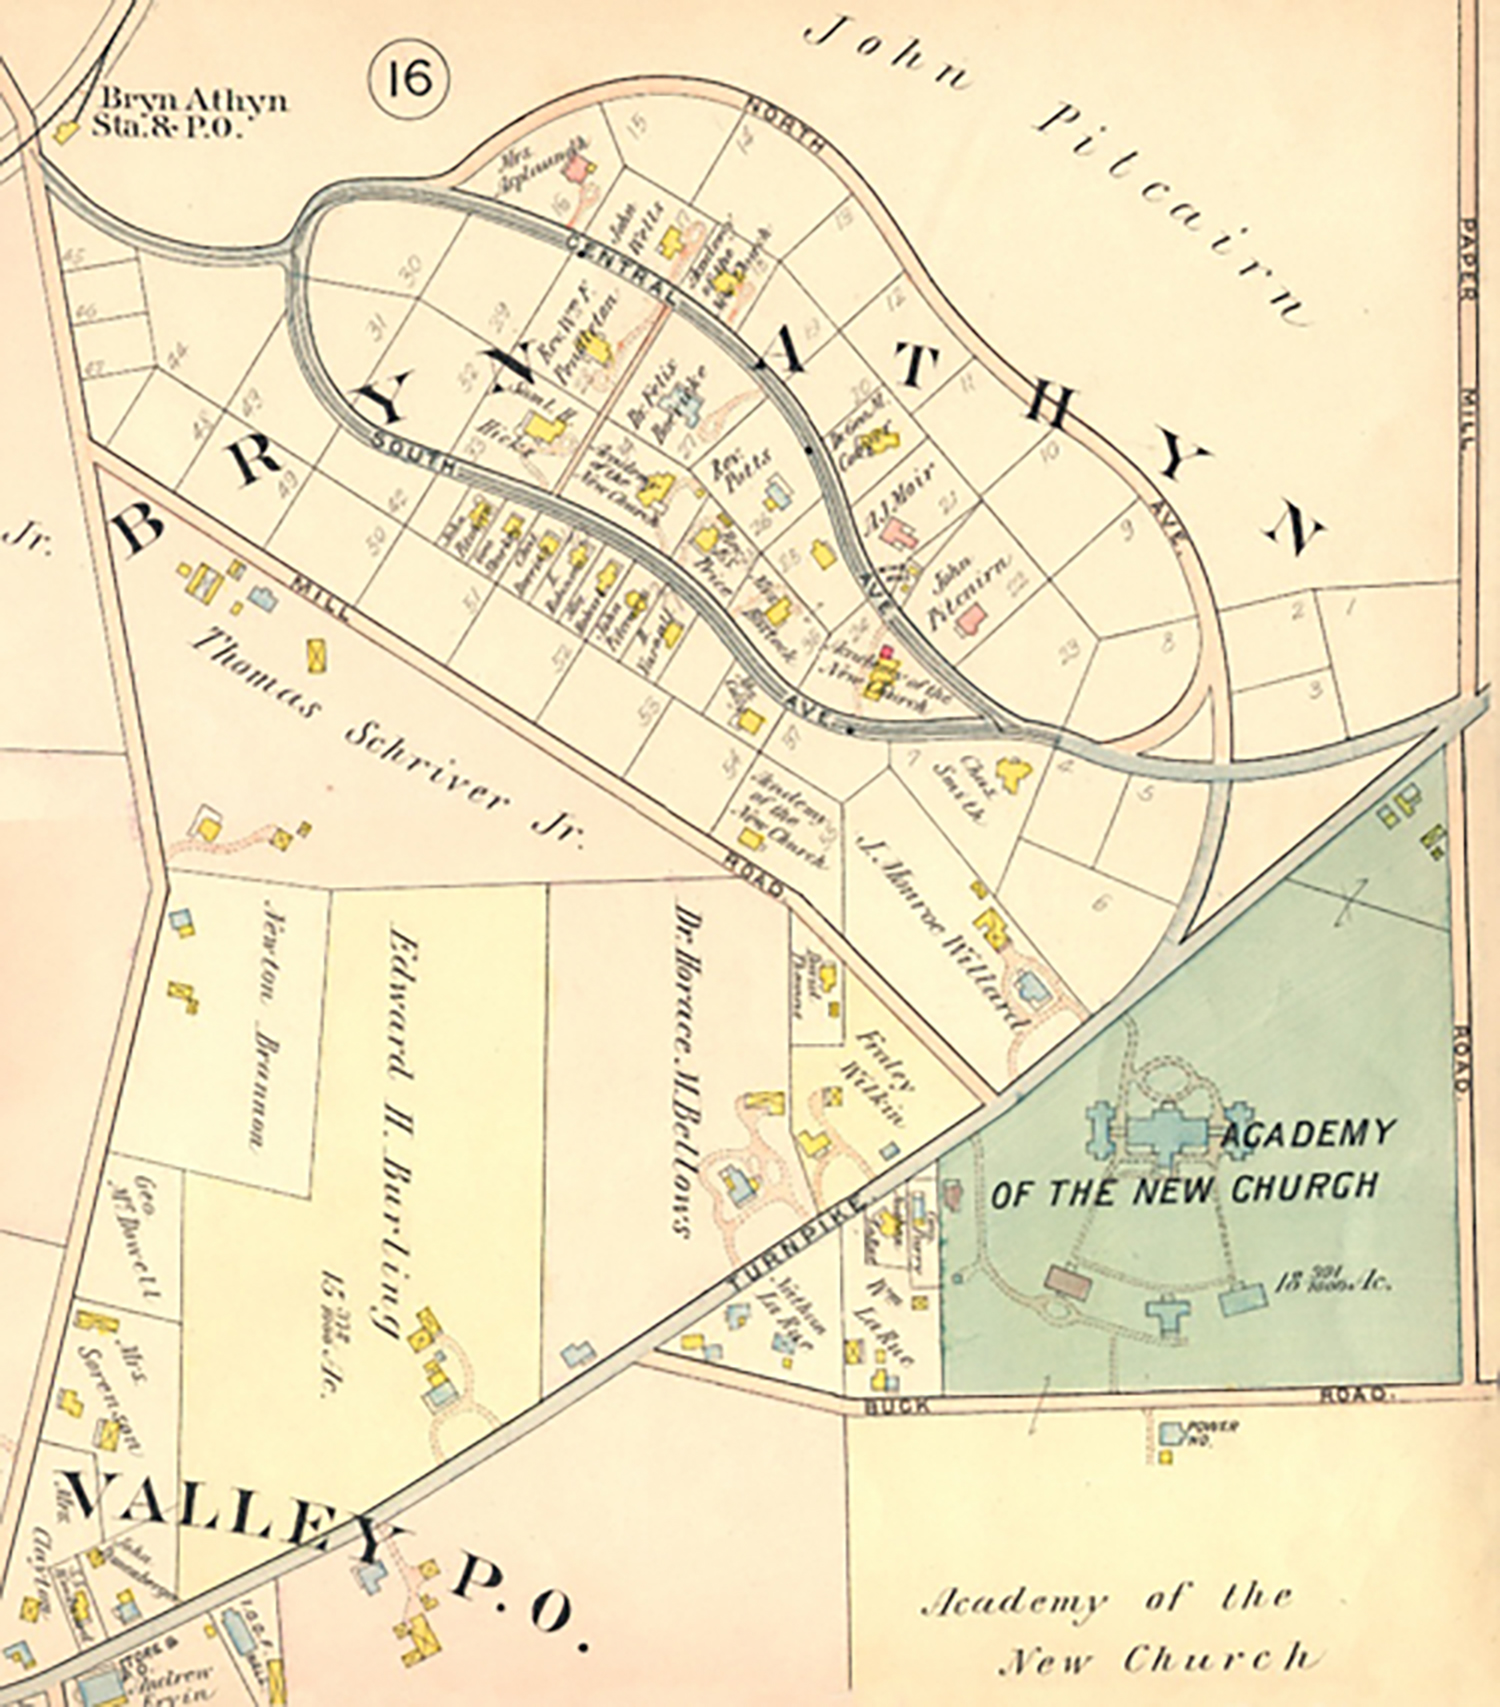 """Figure 3: Detail of a portion of Bryn Athyn from  Atlas of the Properties on the Reading Railway Embracing Cheltenham, Abington, Springfield and Parts of Moreland and Whitemarsh Townships.Plan of the Huntingdon Valley Moreland Township . Author: A. H. Mueller (1909). Plate 17 includes the residential """"Loop"""" and the Academy of the New Church properties."""